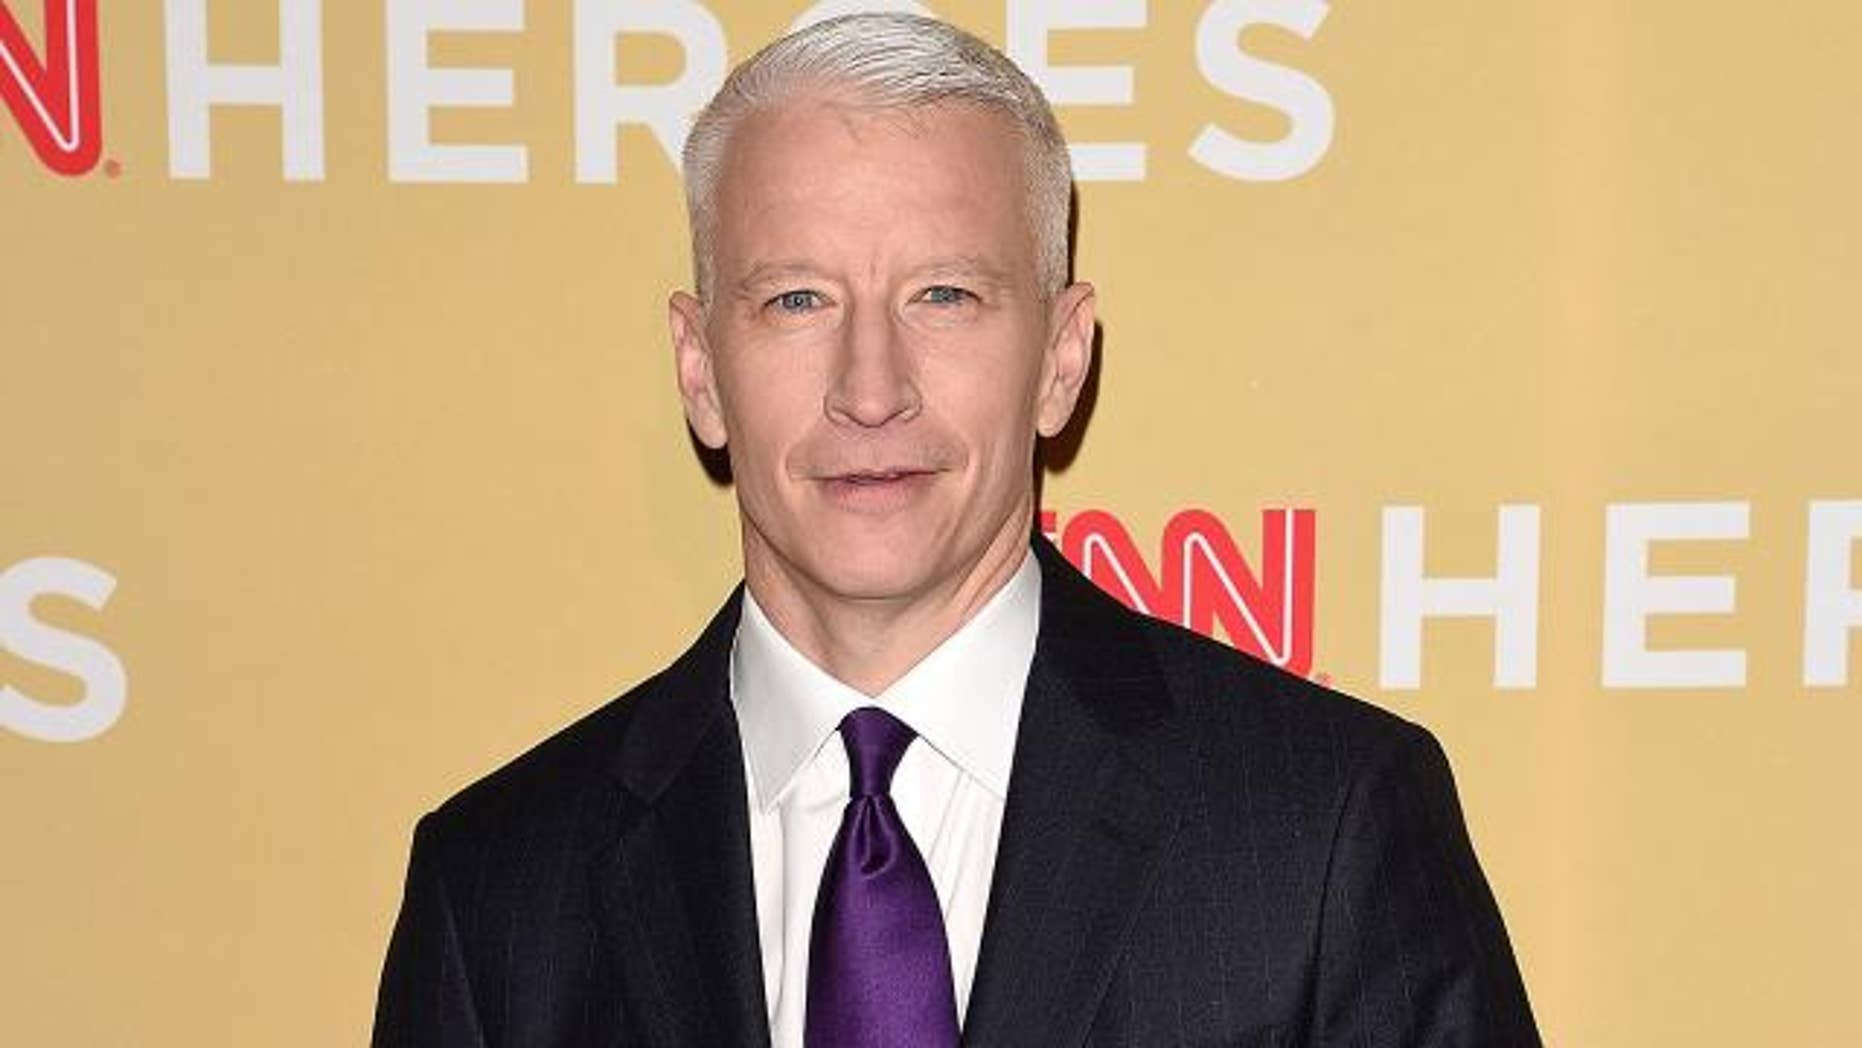 Anderson Cooper admits in a new interview that he never thought he would live past the age of 50.